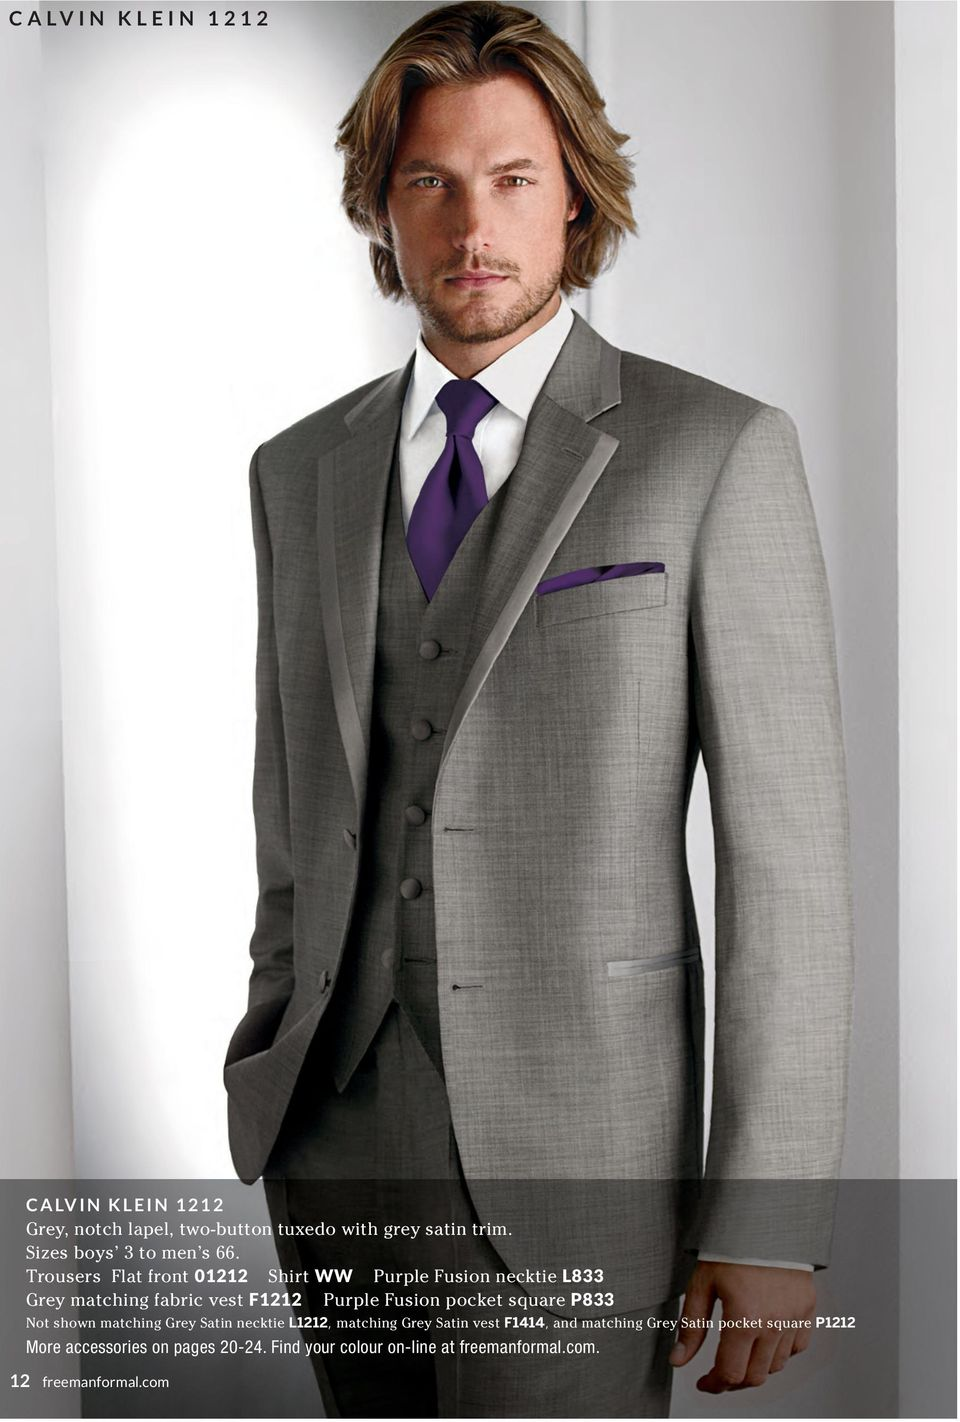 Trousers Flat front 01212 Shirt WW Purple Fusion necktie L833 Grey matching fabric vest F1212 Purple